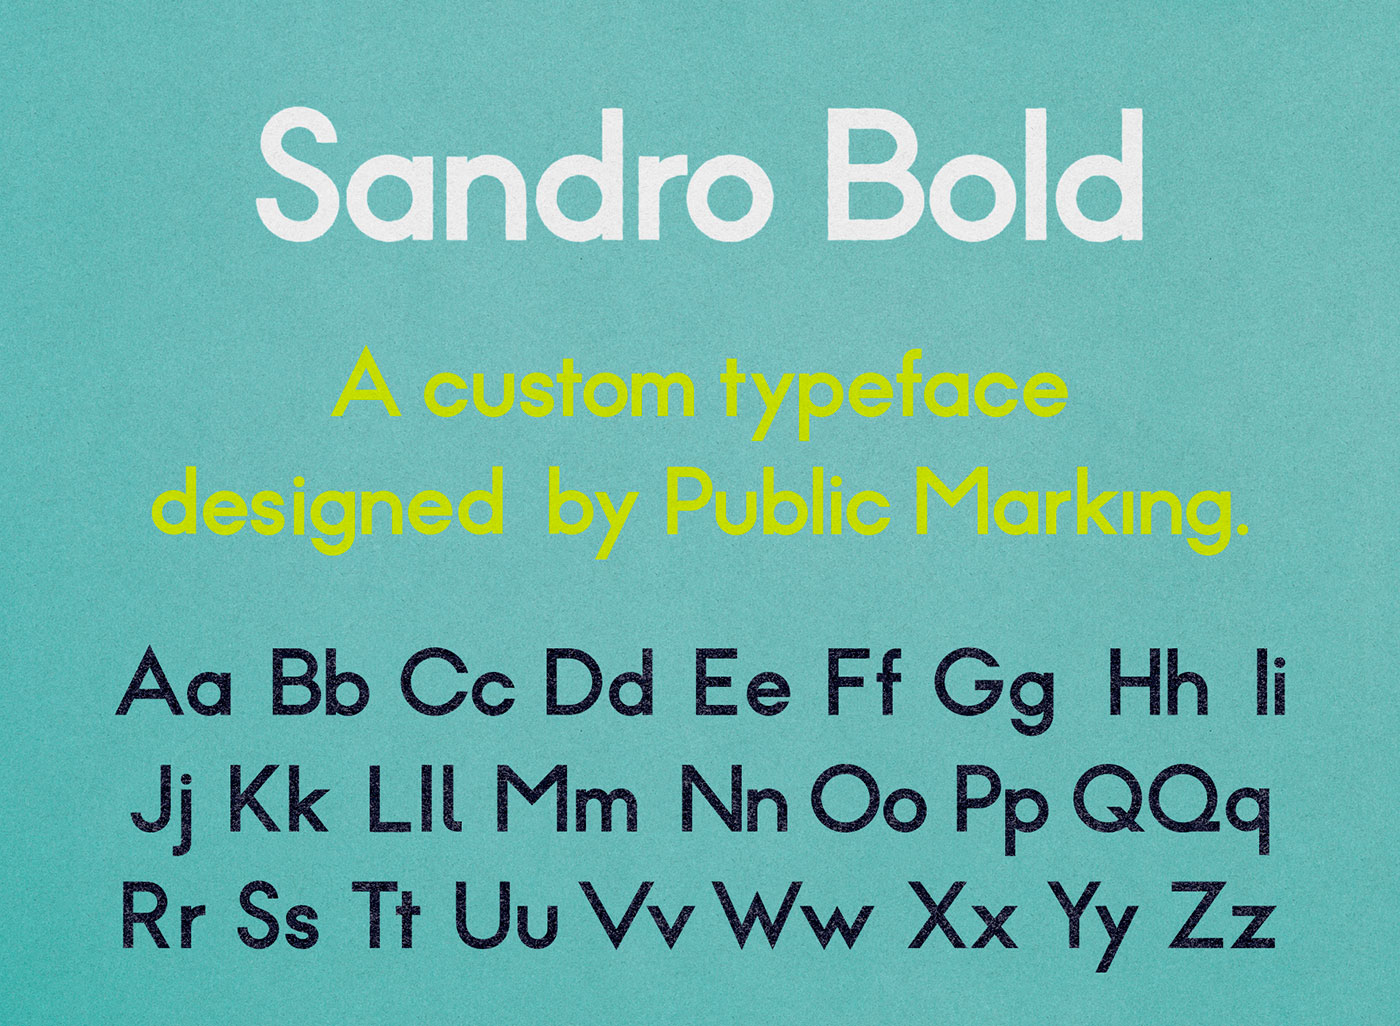 Outfit Branding & Design Public Marking Custom Typography